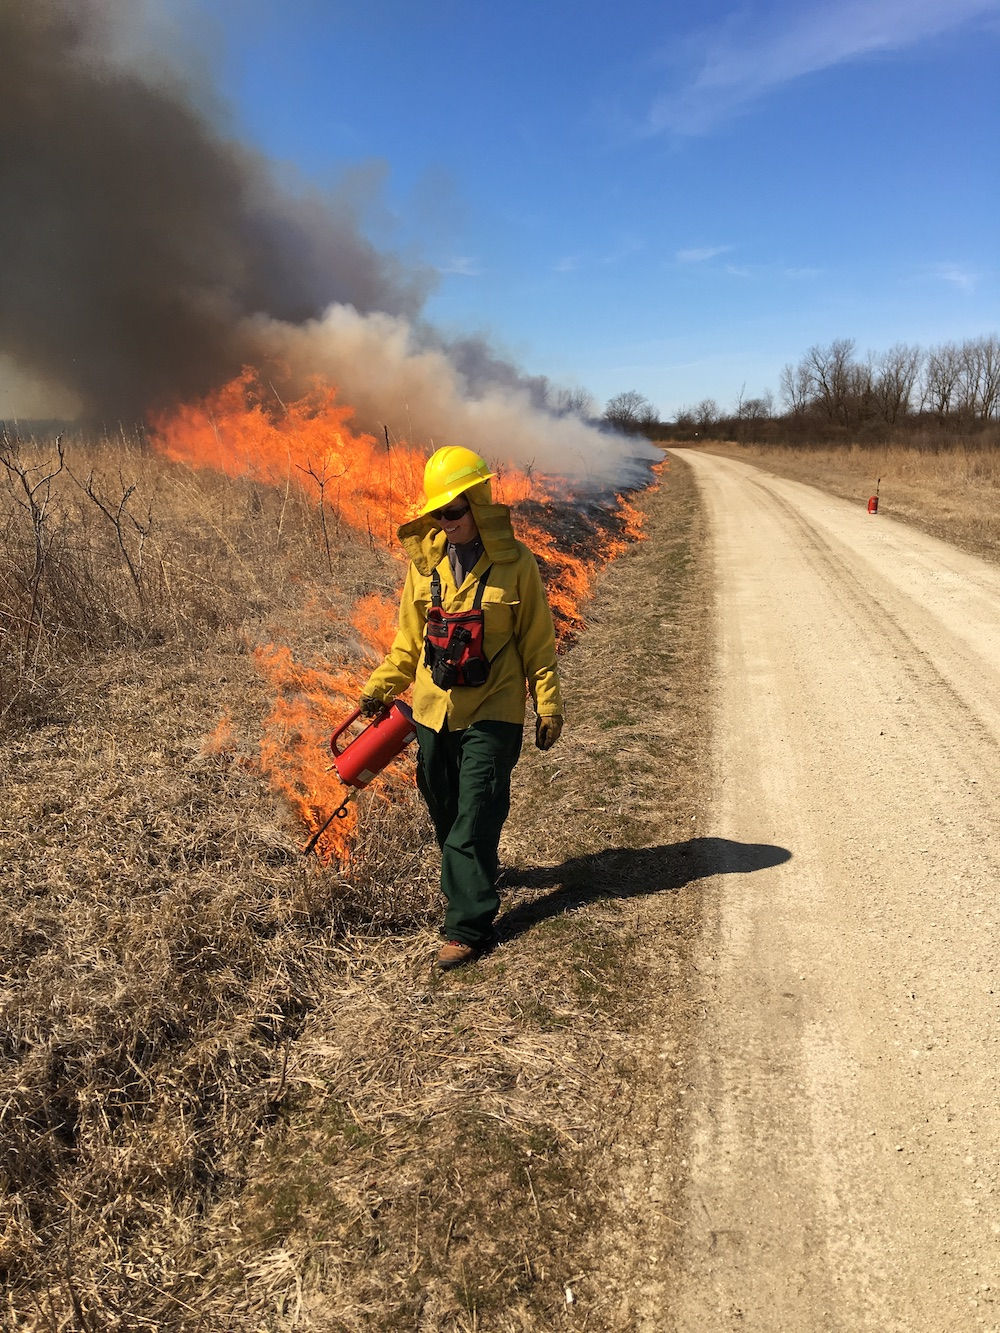 A biologist in flame-retardant gear is conducting a prescribed burn on a grassy natural area. She spreading fire along the edge of the natural area.